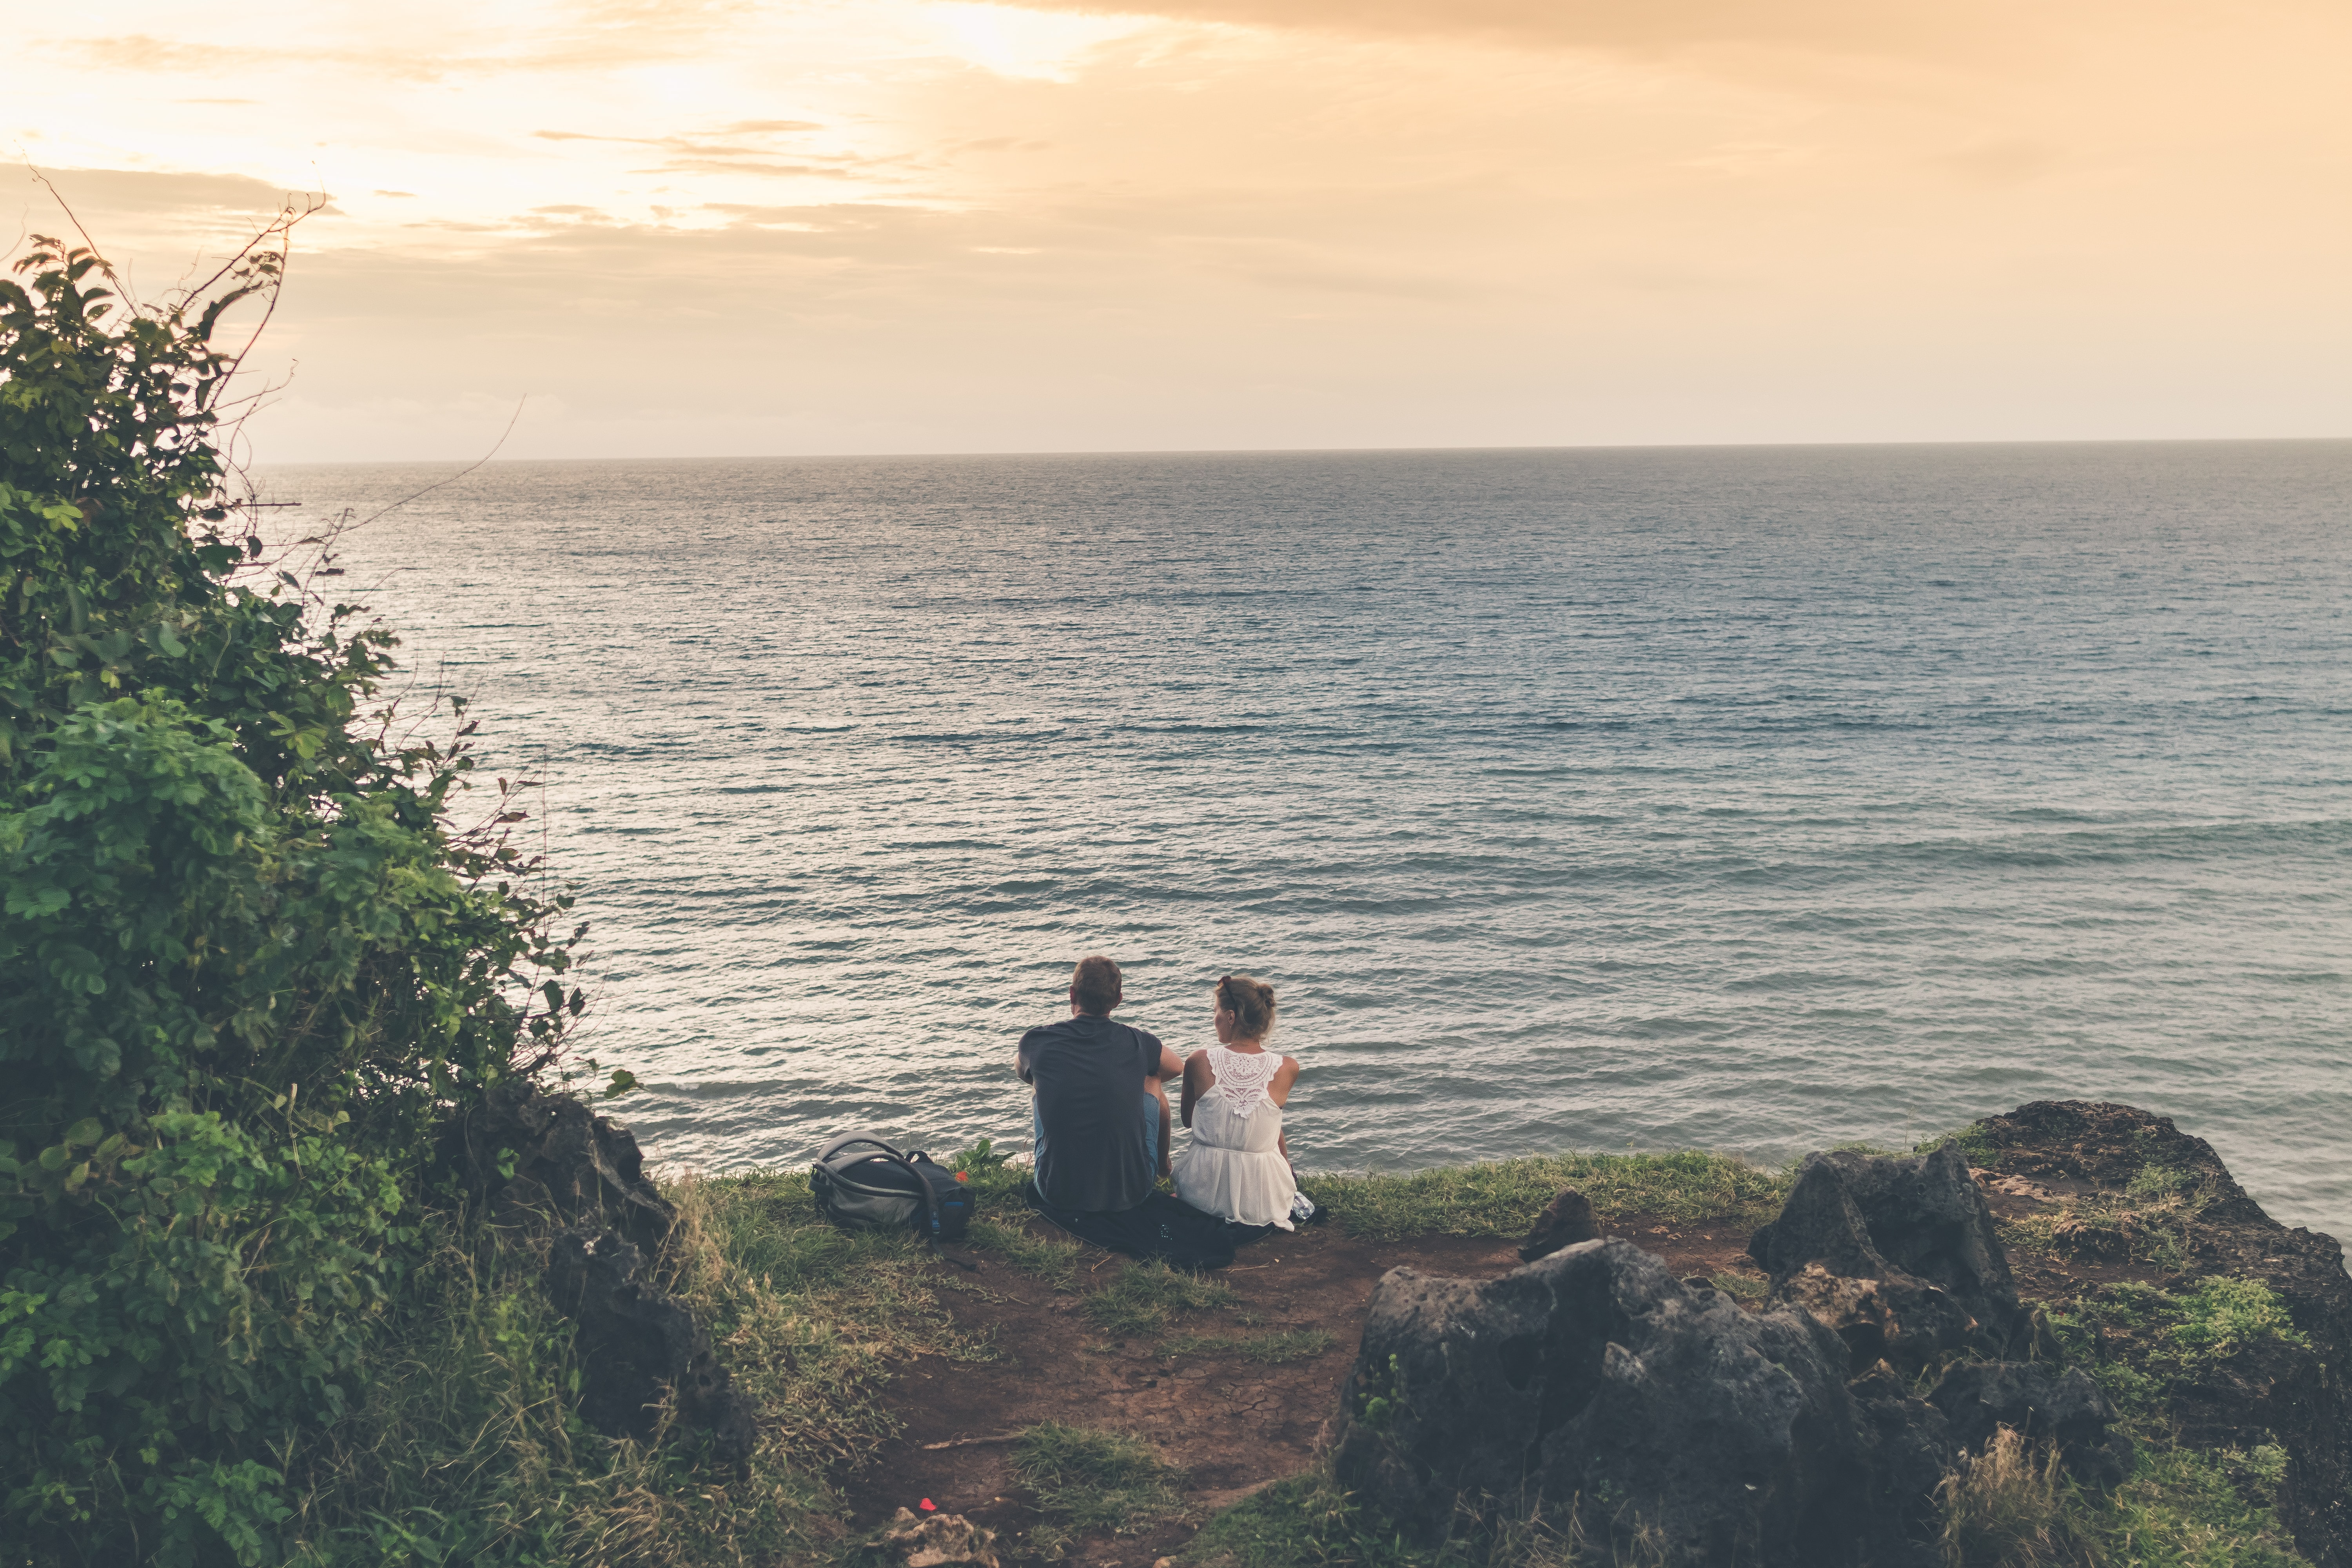 man sitting beside woman both facing in front of body of water